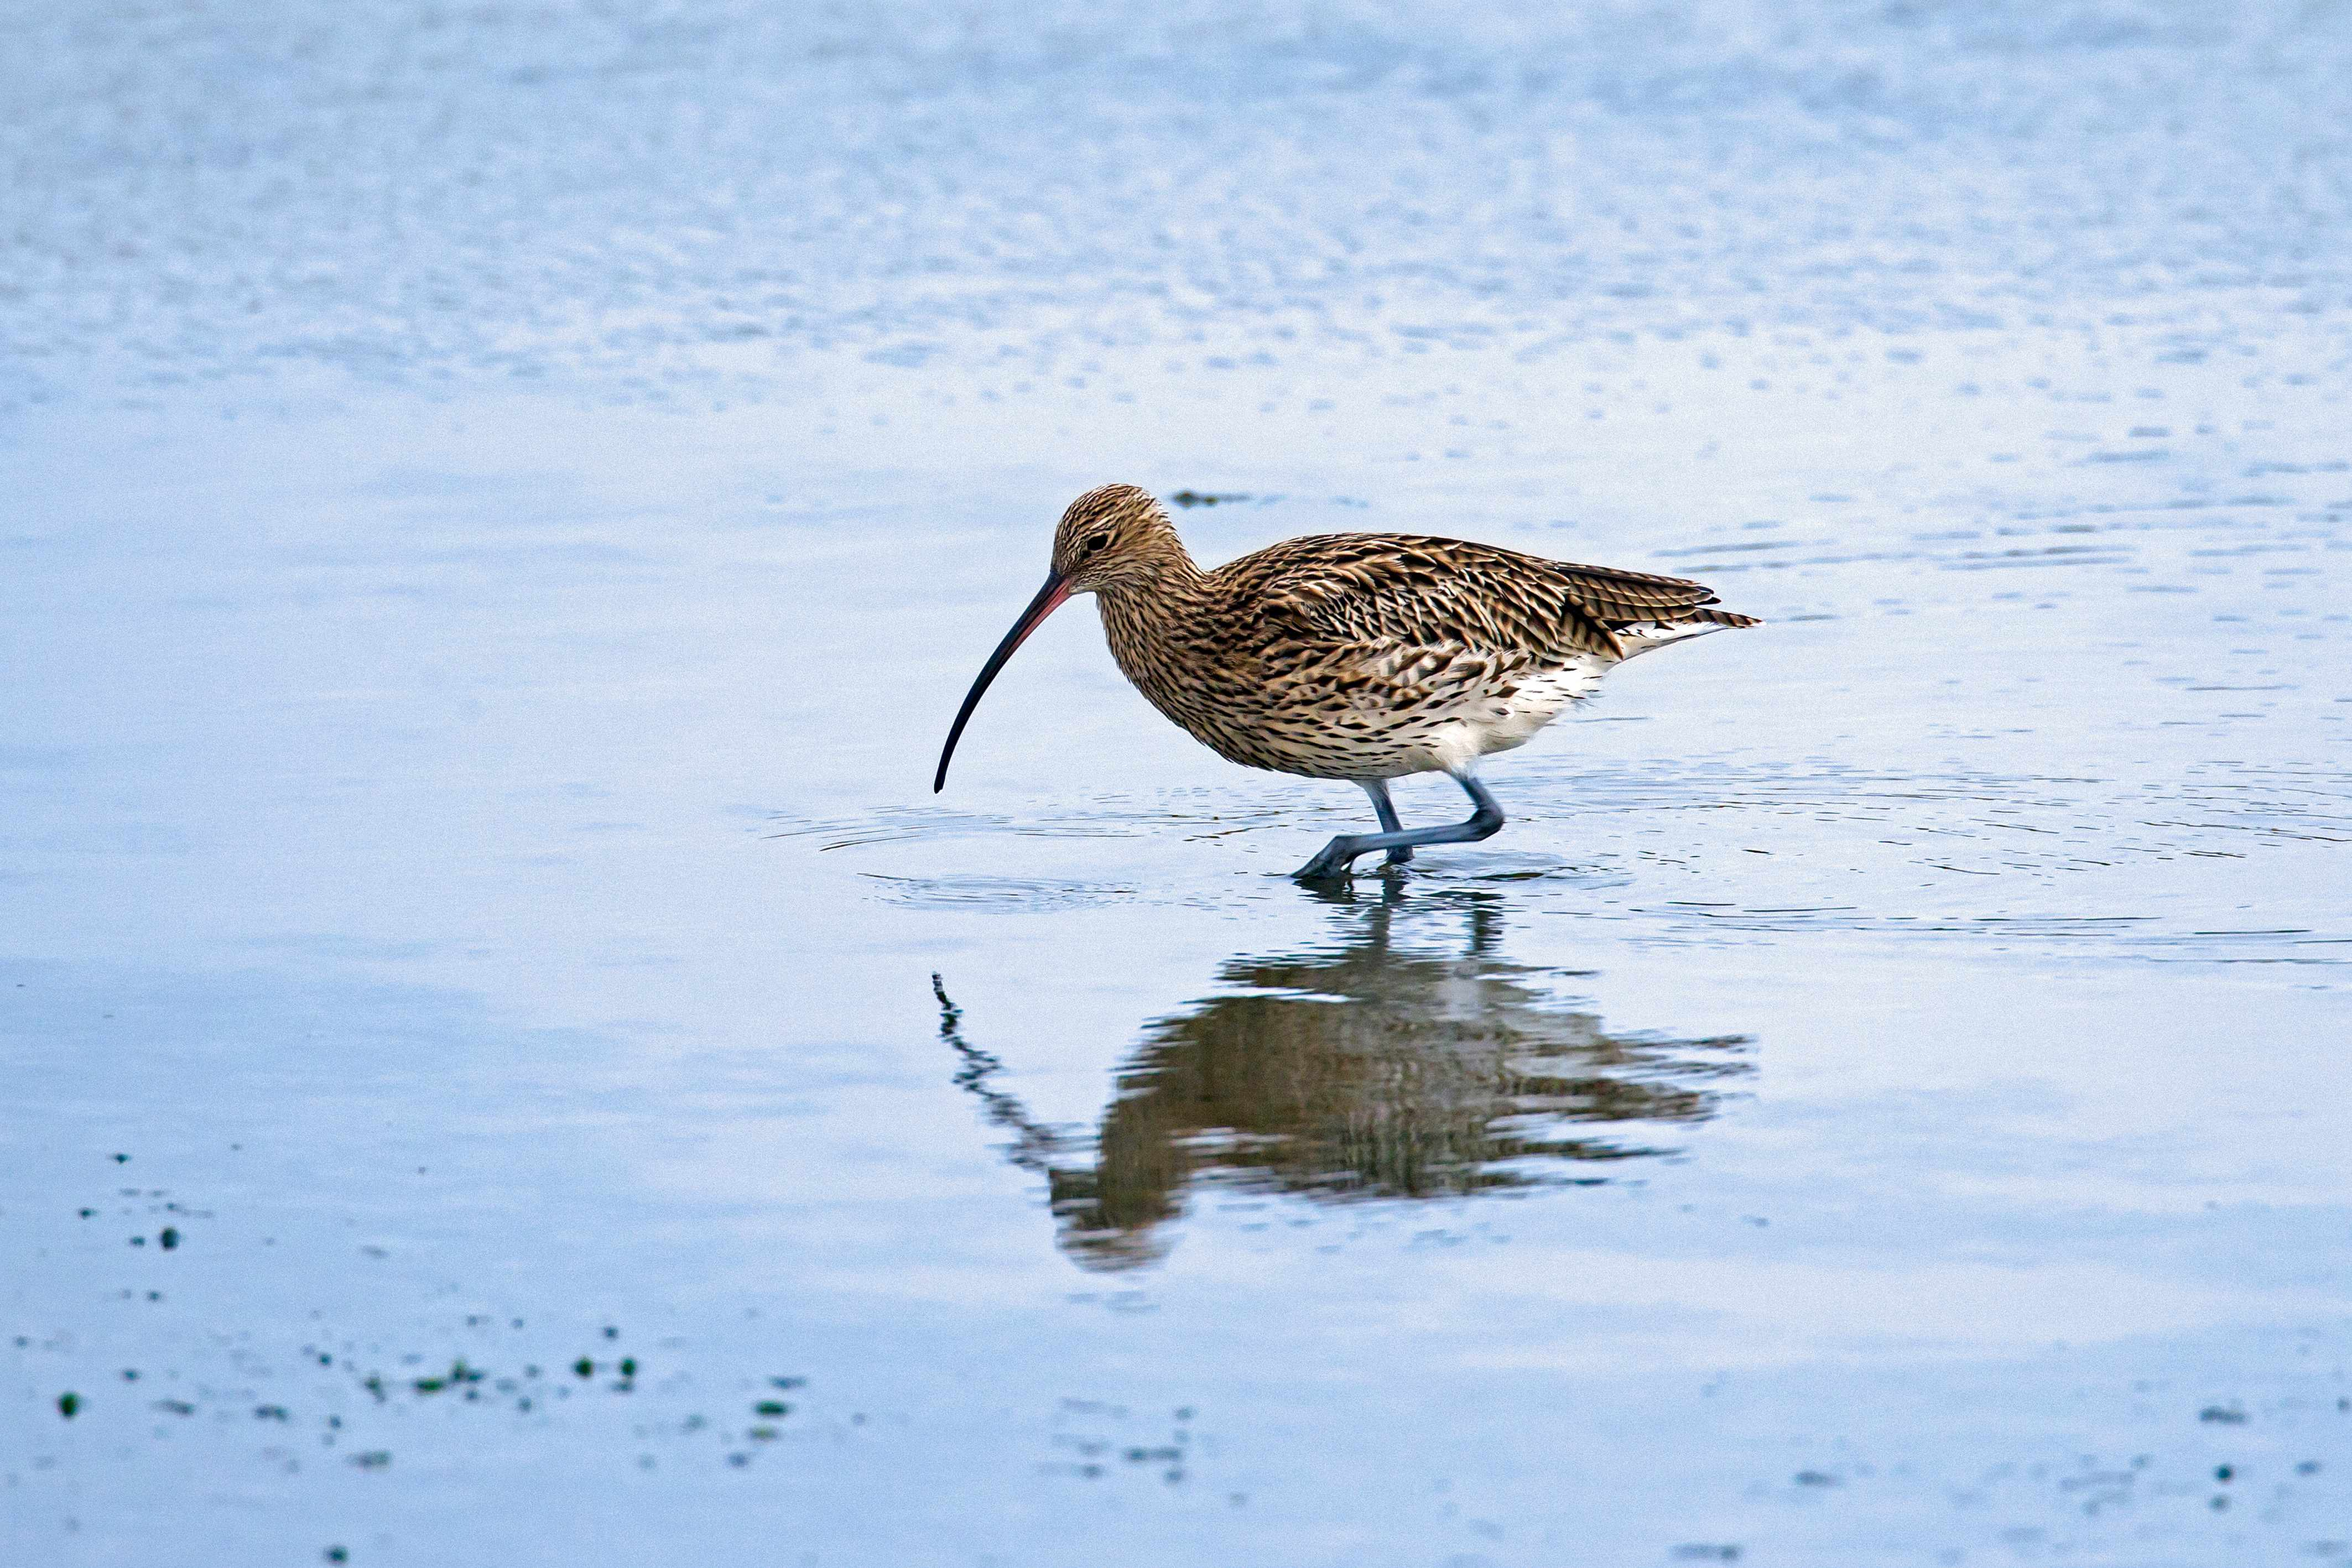 The Eurasian curlew is listed as Near Threatened on the IUCN Red List. © Arterra/UIG/Getty